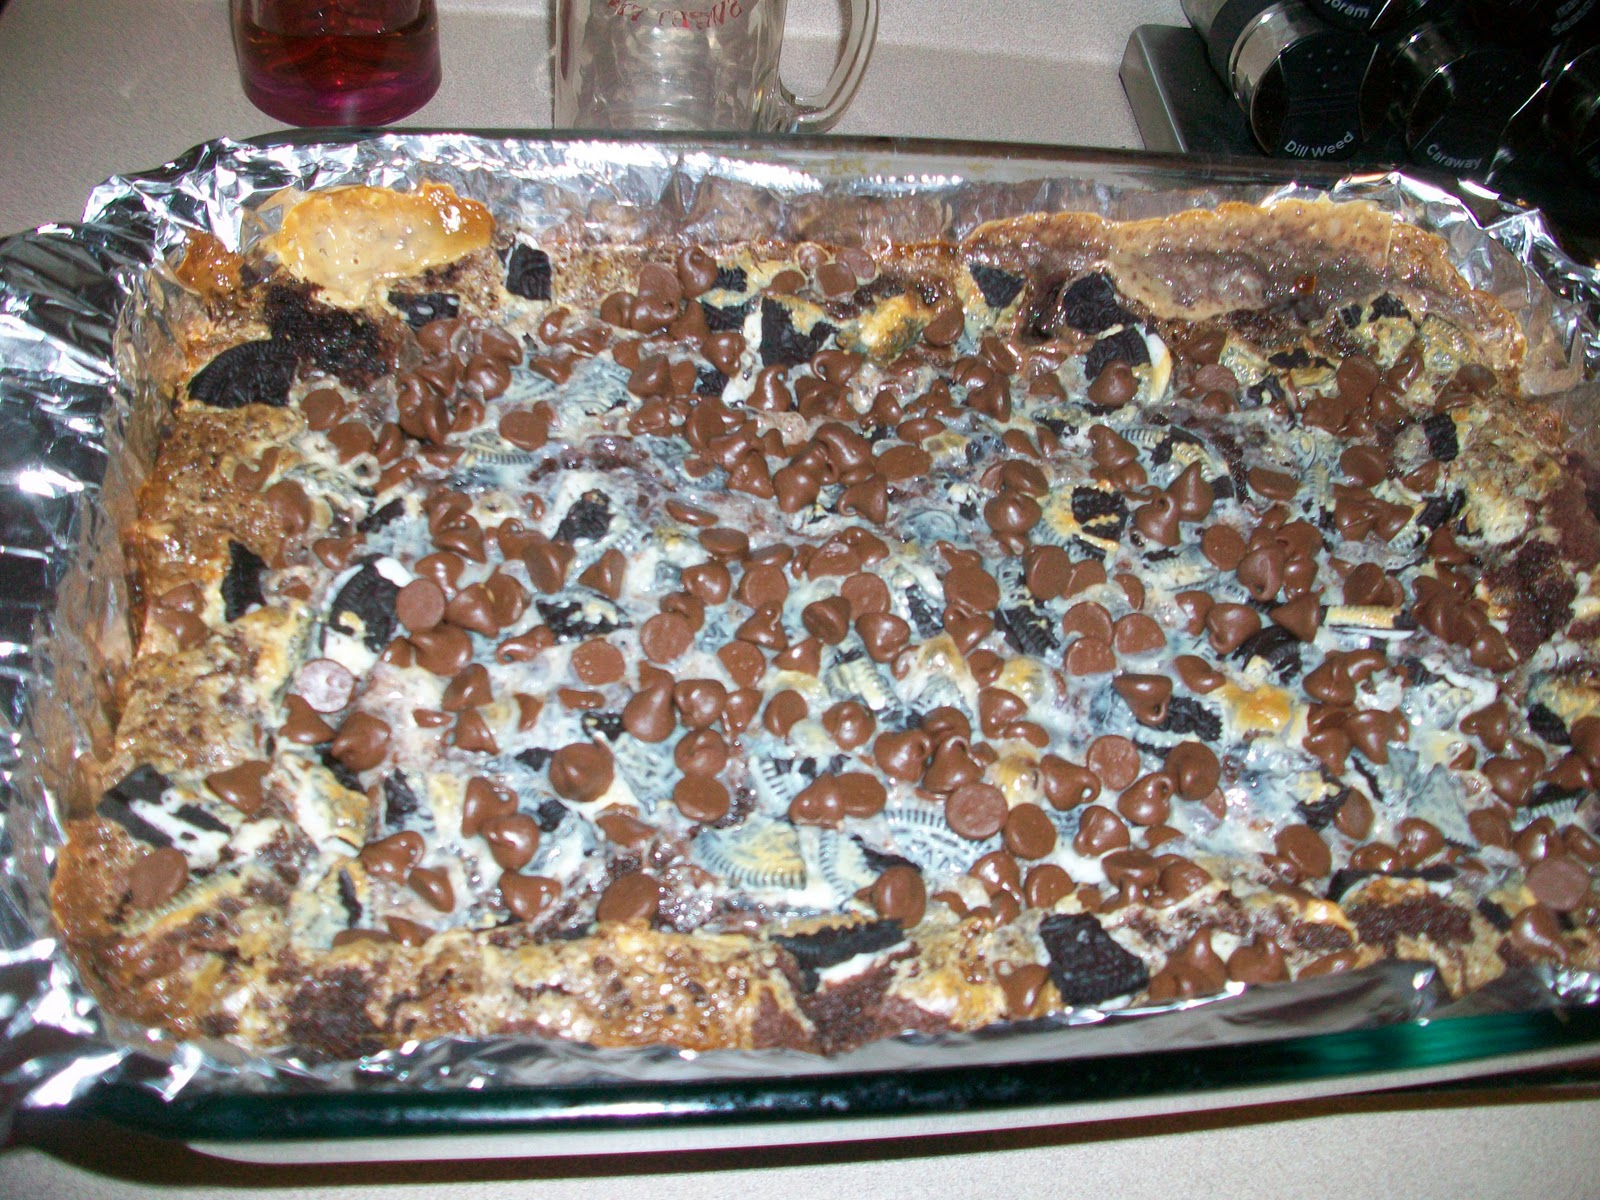 ... .com/2011/07/05/gooey-cookies-and-cream-double-chocolate-cake-bars